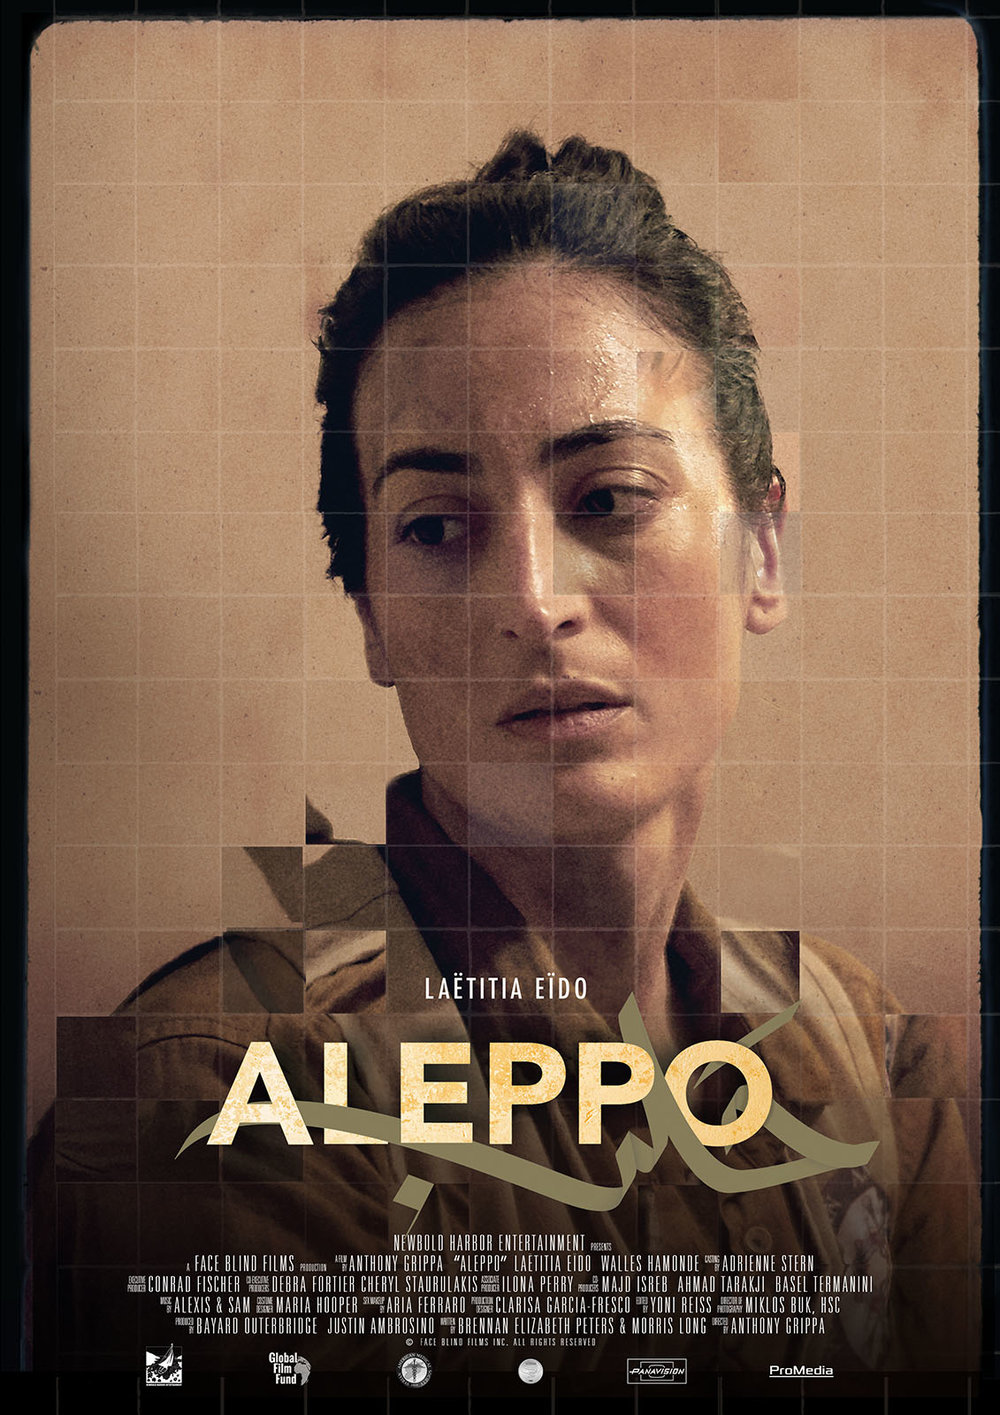 Aleppo (2019) - Hanan, a successful young Syrian-American doctor, returns to Syria to help victims of war. When the hospital where she works is bombed, she suffers a traumatic brain injury that leaves her face blind. Unable to recognize the faces of even those closest to her, Hanan's world has been turned upside down and her identity lost.Now home in New York, Hanan has difficulty coming to terms with how her life has changed following the attack. Haunted by her trauma and struggling to adjust to her condition, Hanan must confront her fear of navigating the world, putting her identity, and her future as a doctor, in doubt.